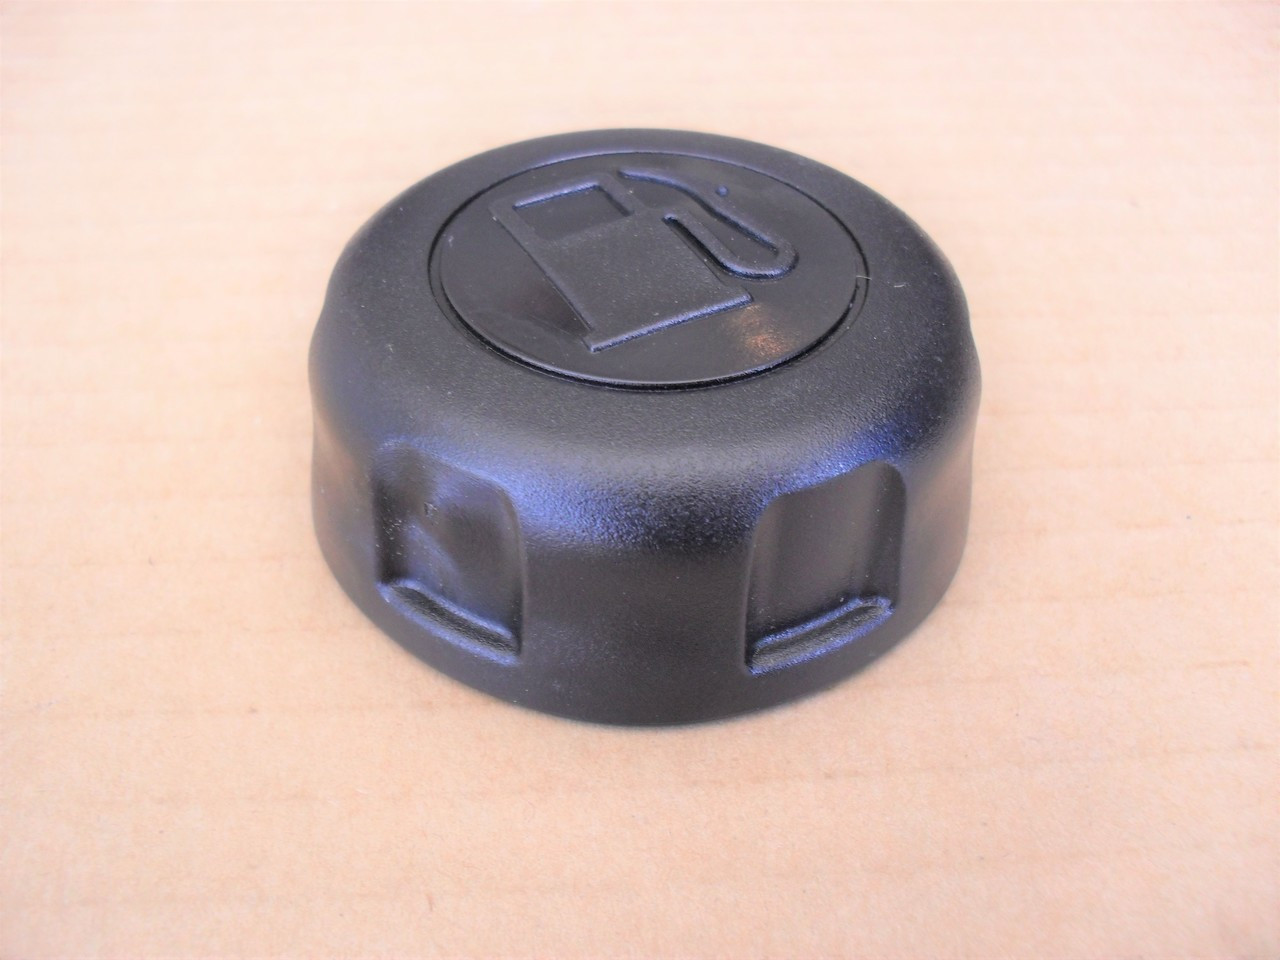 Craftsman Lawn Tractor Gas Cap : Gas fuel cap for craftsman spm lawn mower